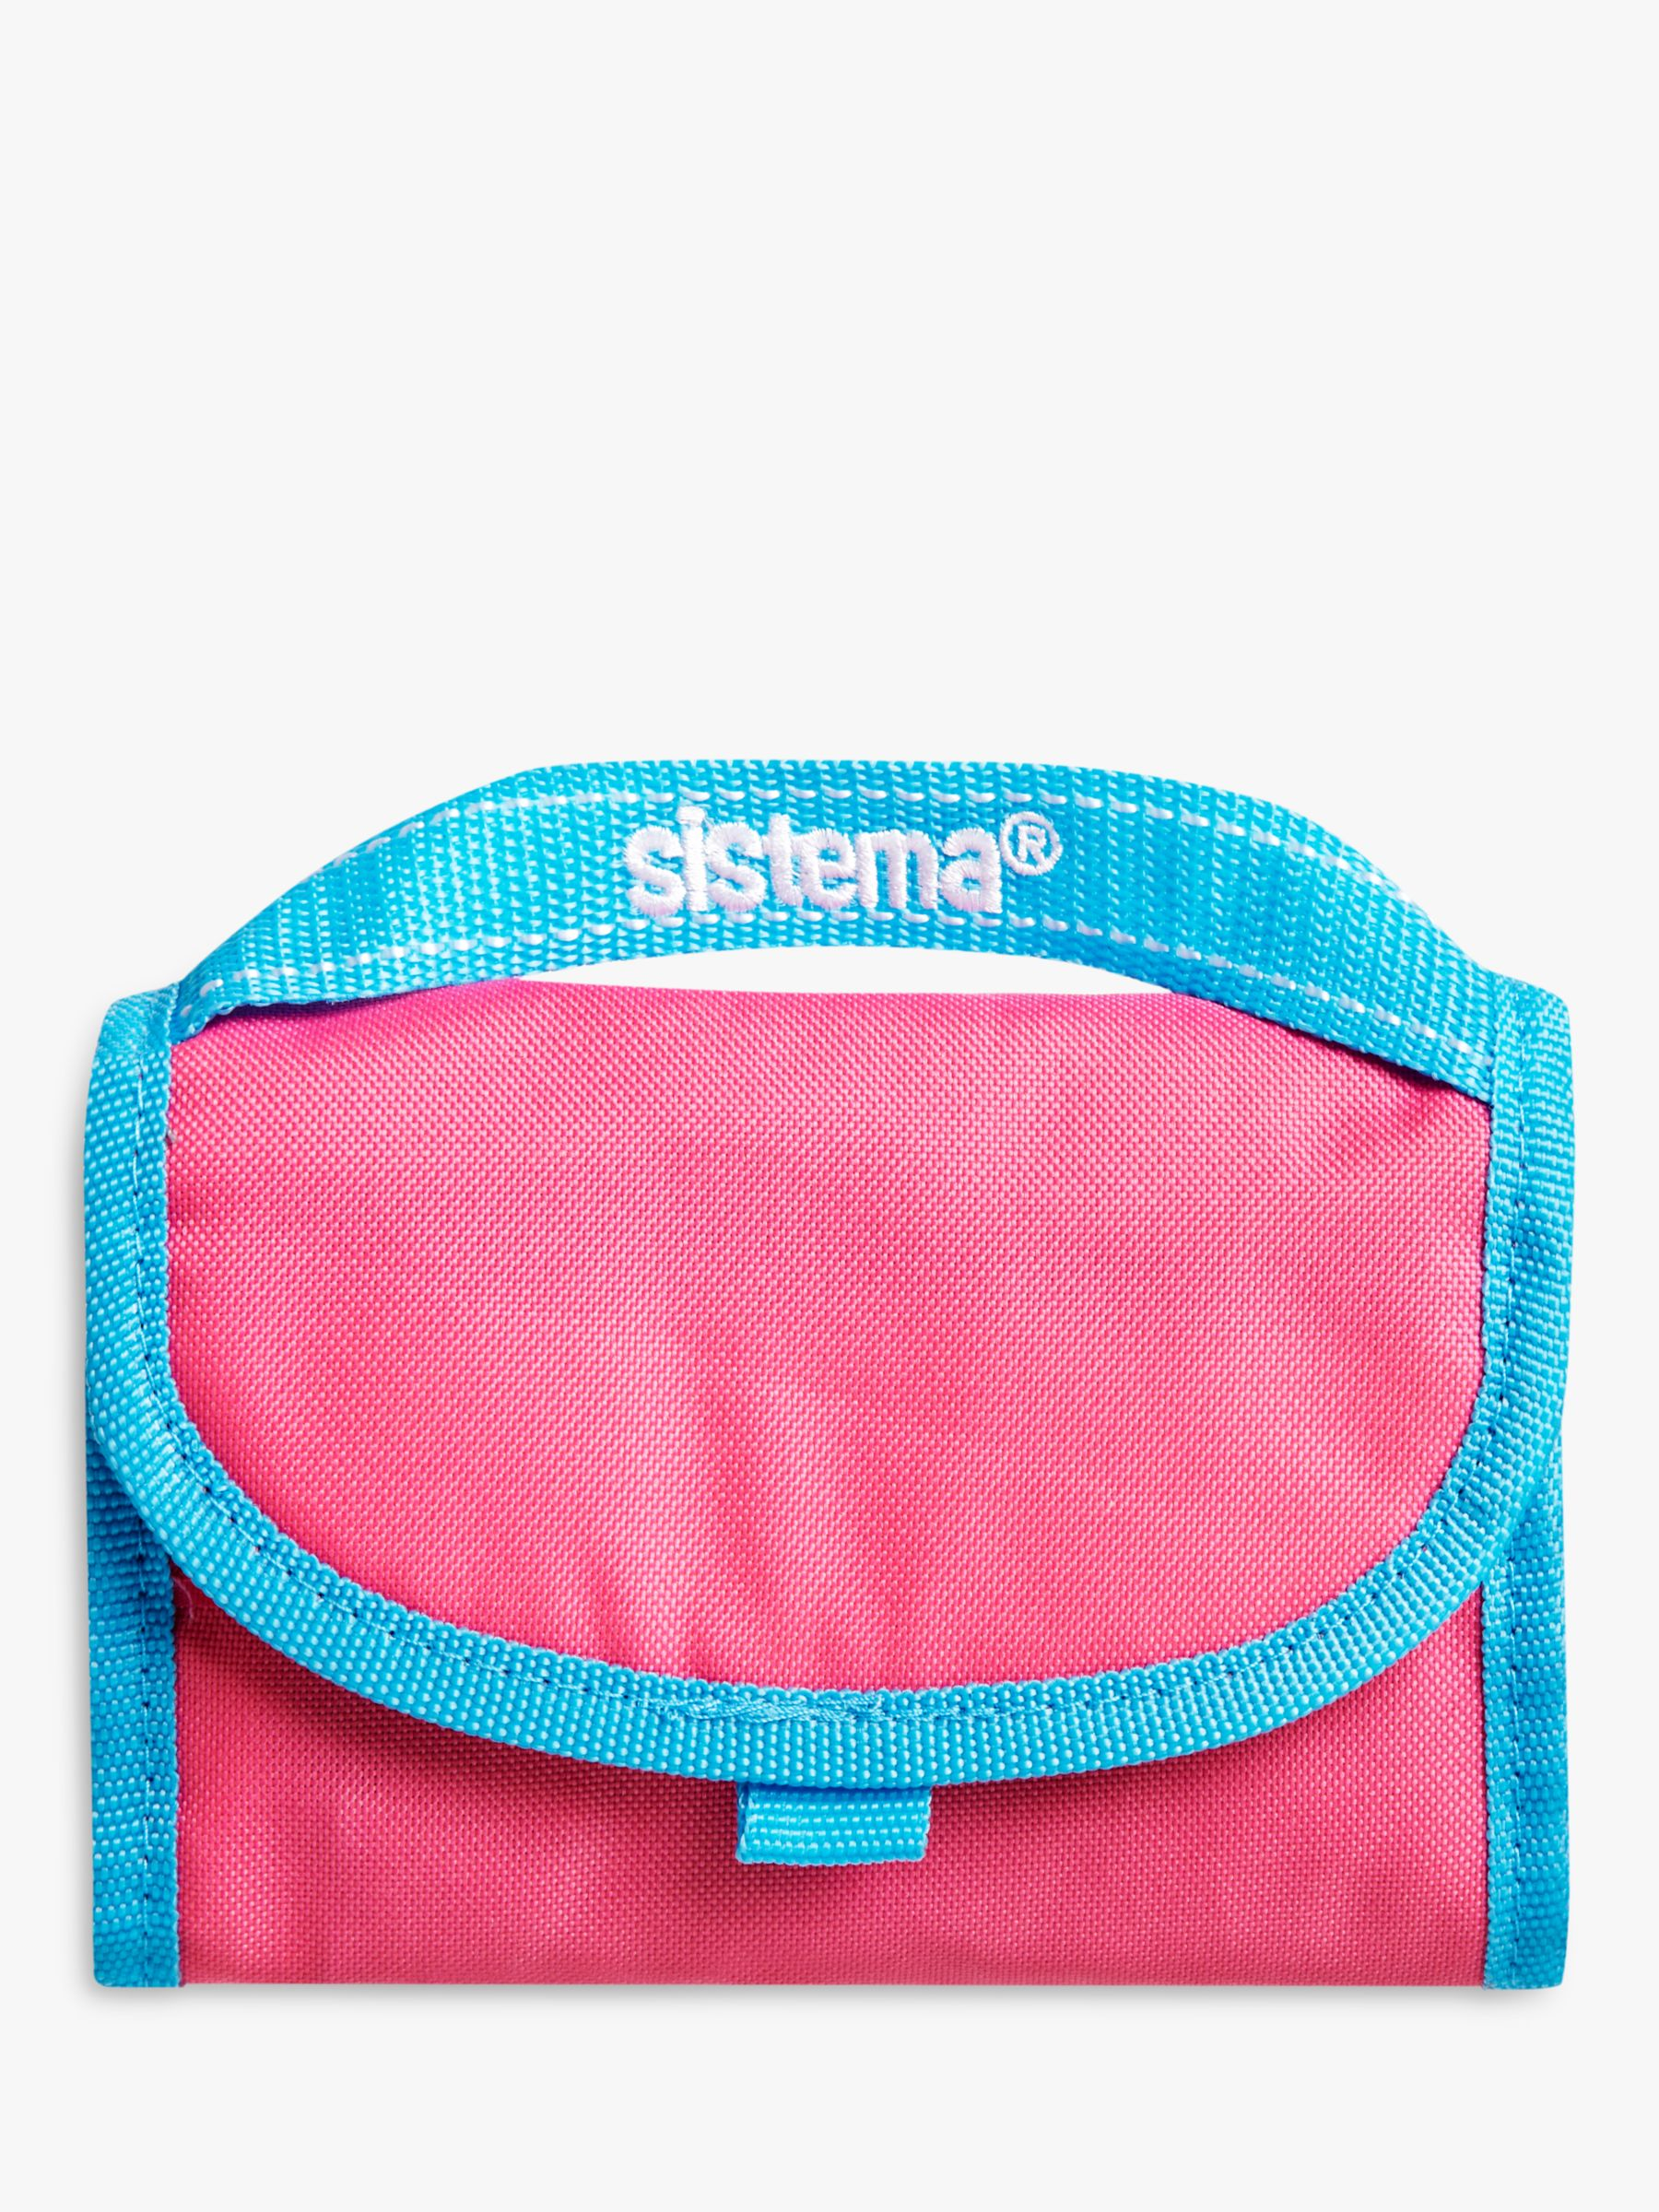 Sistema Lunch To Go Lunch Bag, Assorted